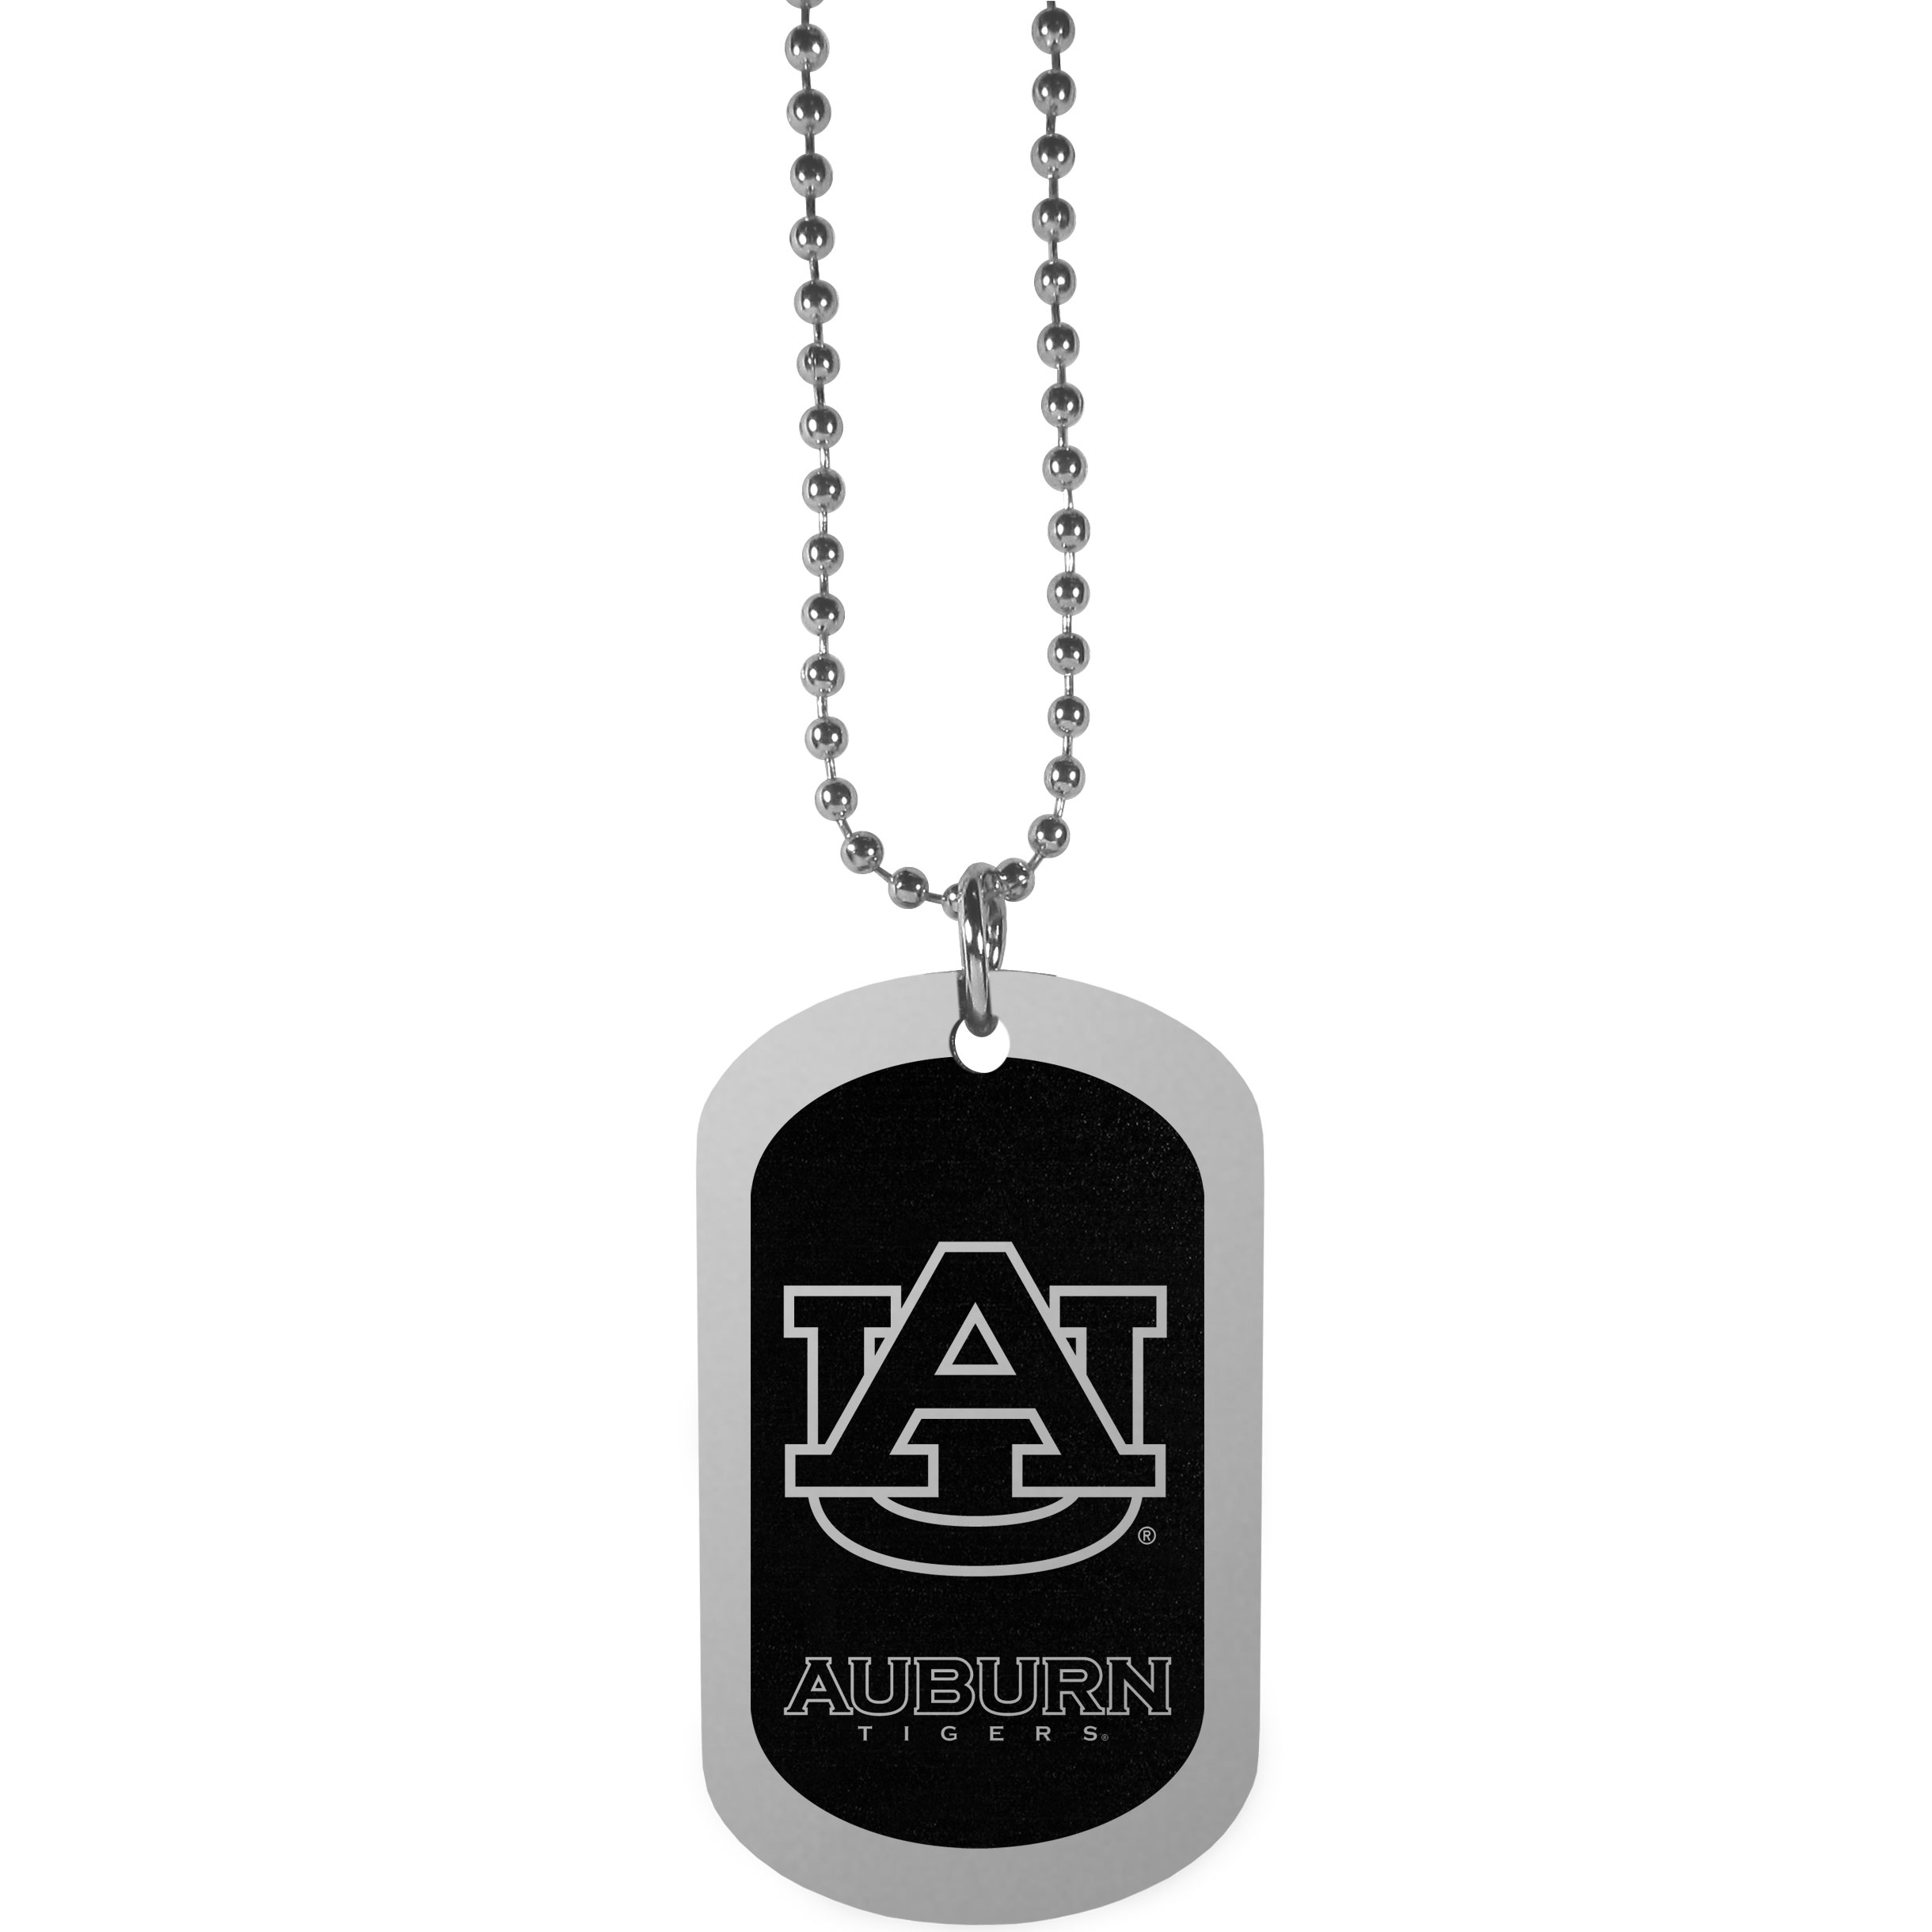 Auburn Tigers Chrome Tag Necklace - Dog tag necklaces are a fashion statement that is here to stay. The sporty version of the classic tag features a black printed over a high polish tag to create a bold and sporty look. The tag comes on a 26 inch ball chain with a ball and joint clasp. Any Auburn Tigers would be proud to wear this attractive fashion accessory.